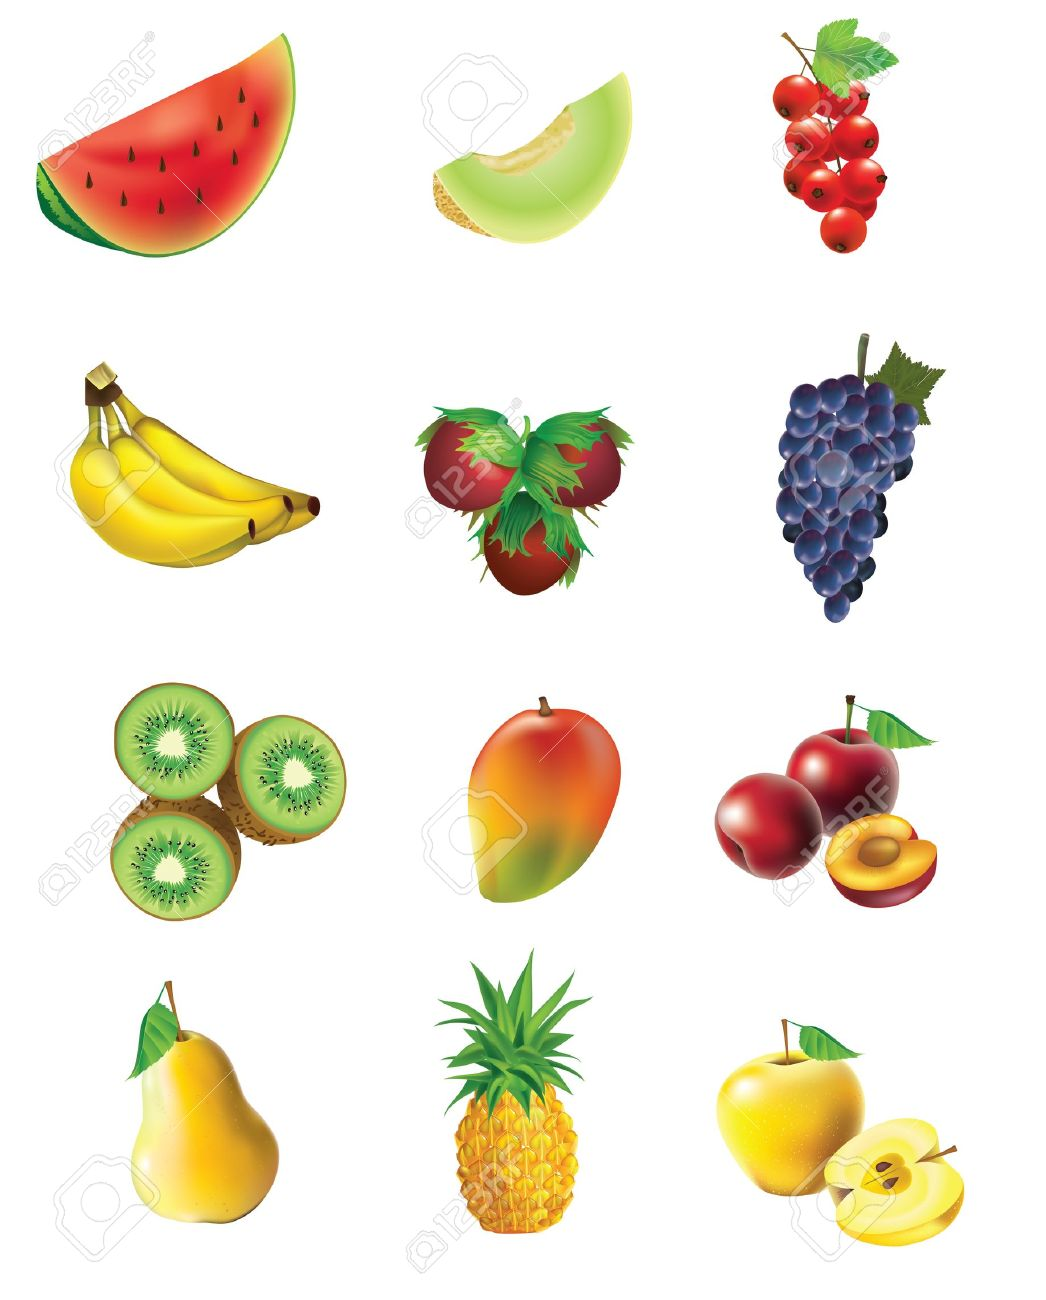 Fruits and vegetables, set of isolated, detailed vector illustrations and icons Stock Vector - 11138244